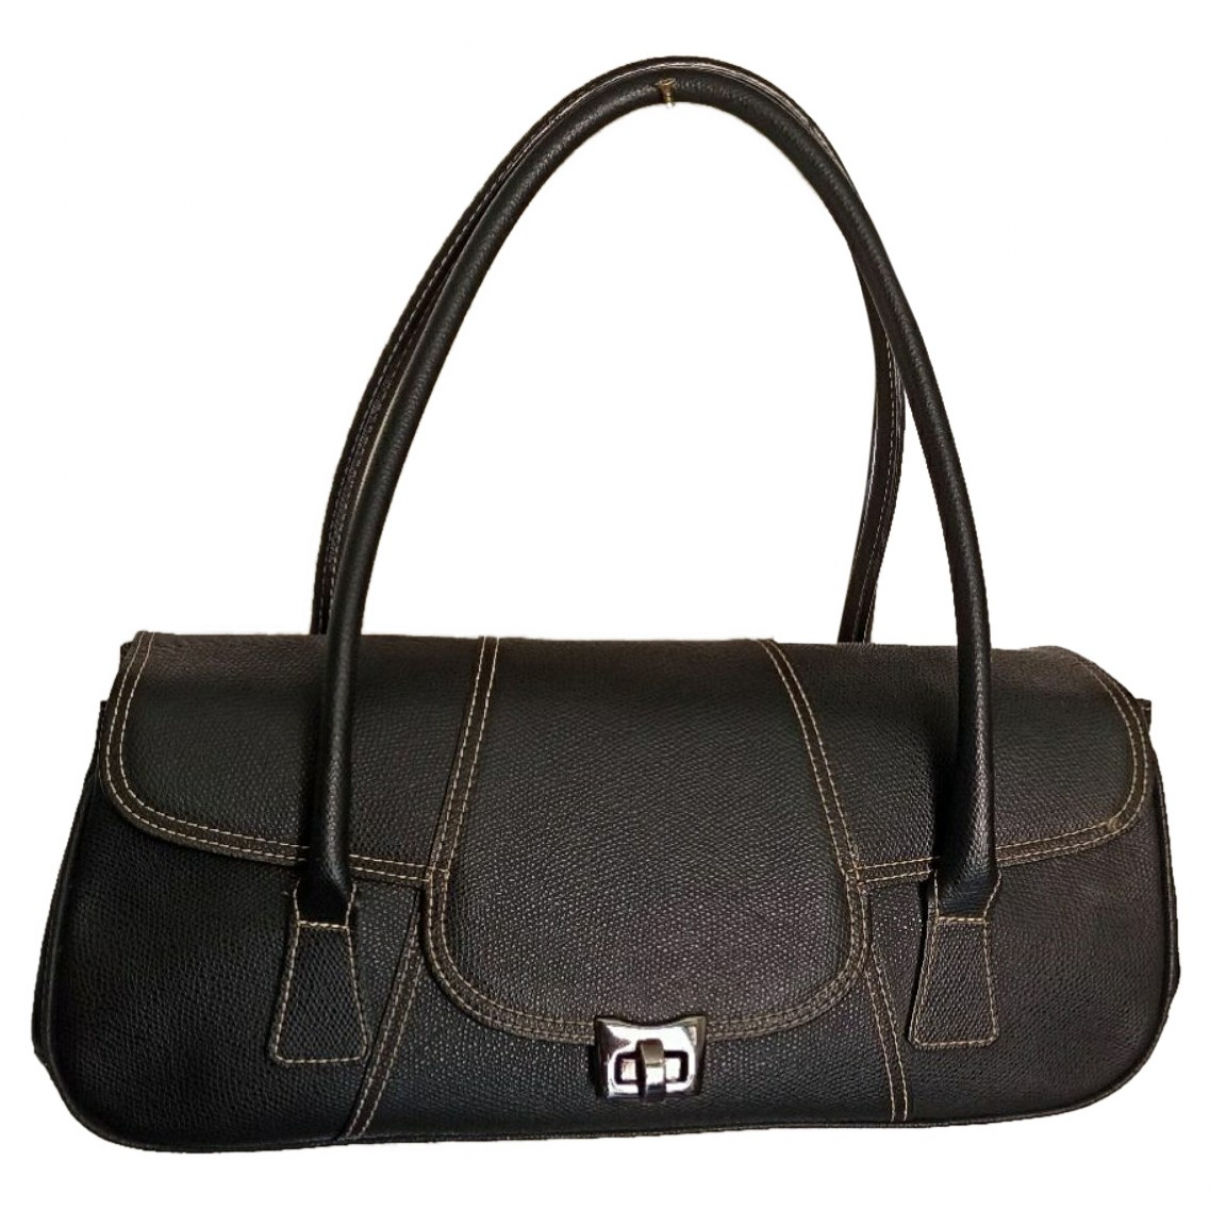 Marella \N Black Leather handbag for Women \N